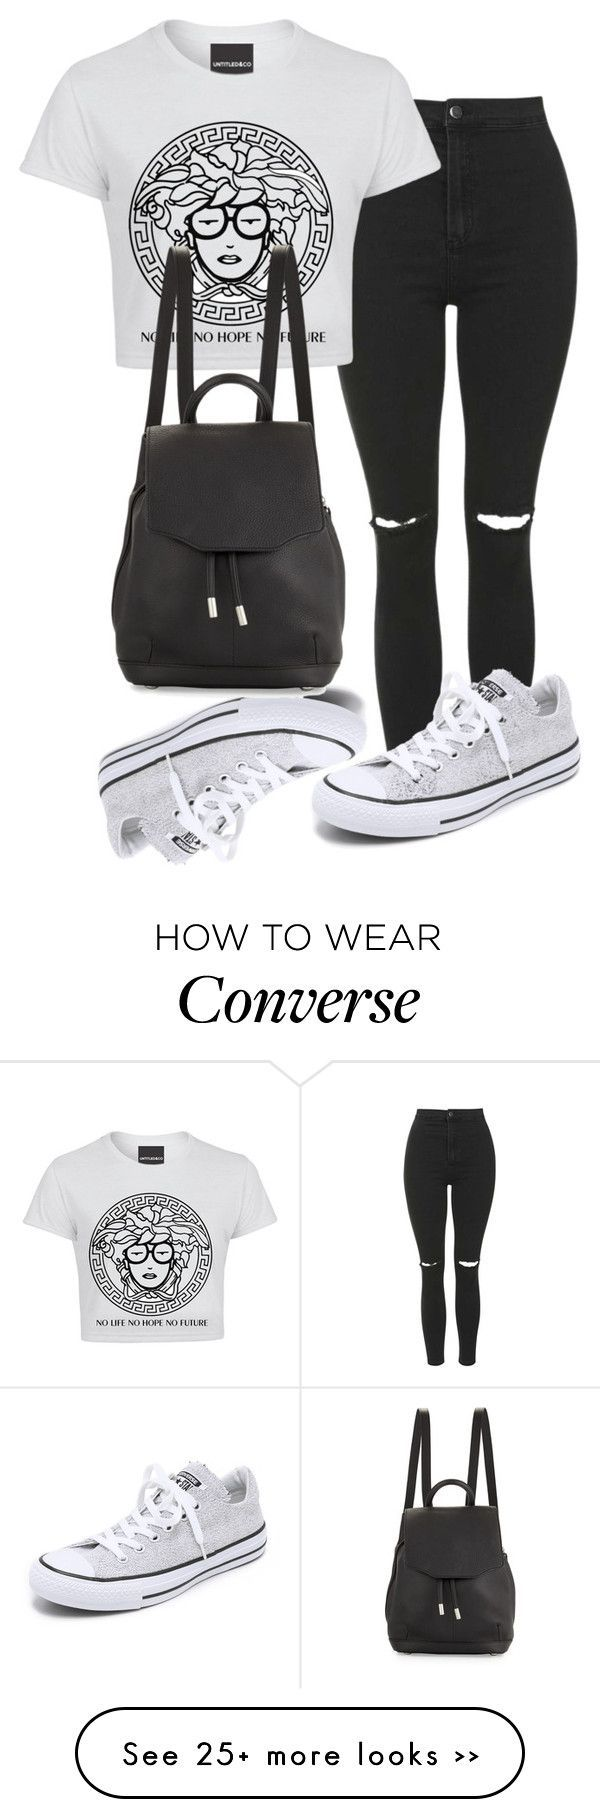 """."" by adorci02 on Polyvore with Topshop, Converse and rag & bone   – Outfits"